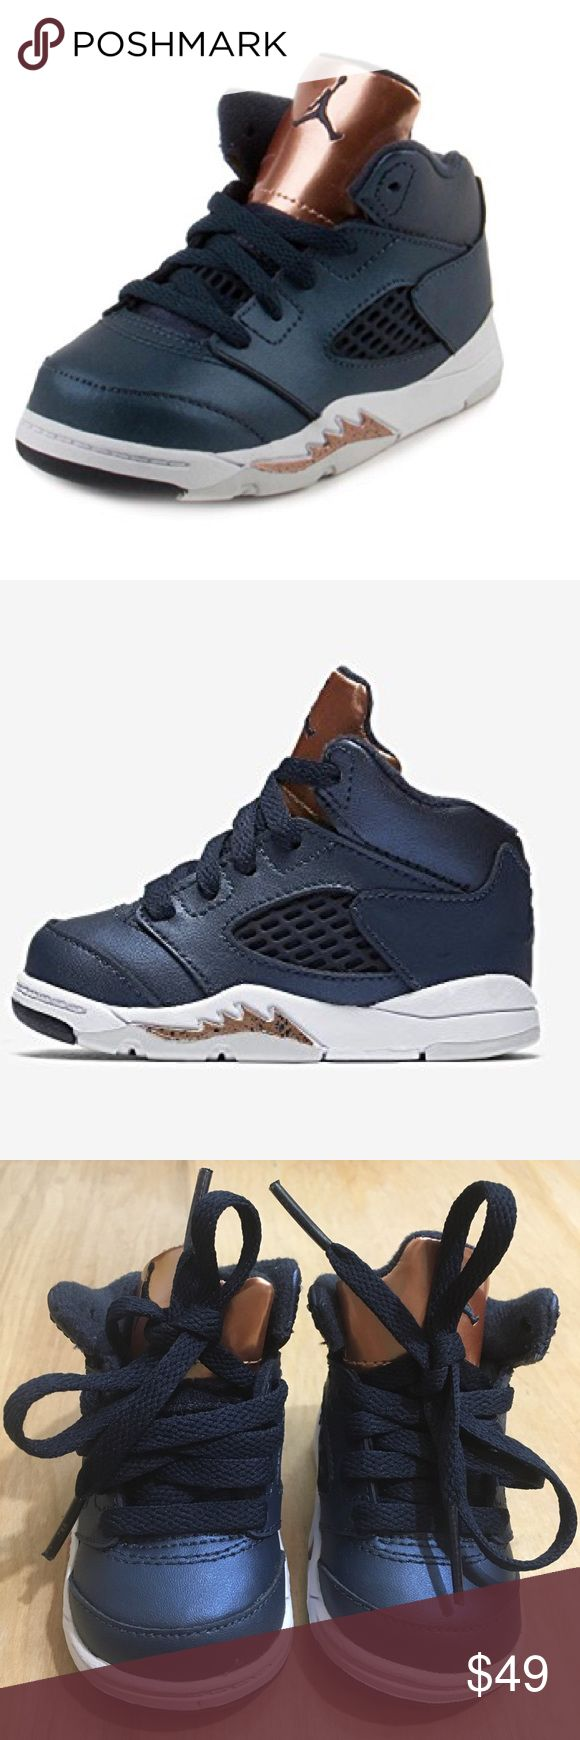 Nike Jordan 5 Retro BT Boys Toddler 2c Olympics NEW  Nike Jordan 5 Retro BT  Boys Toddler 2c  Olympics  Obsidon/White-Gold Leather  440890-416 181216 NO BOX, no defects Jordan Shoes Sneakers